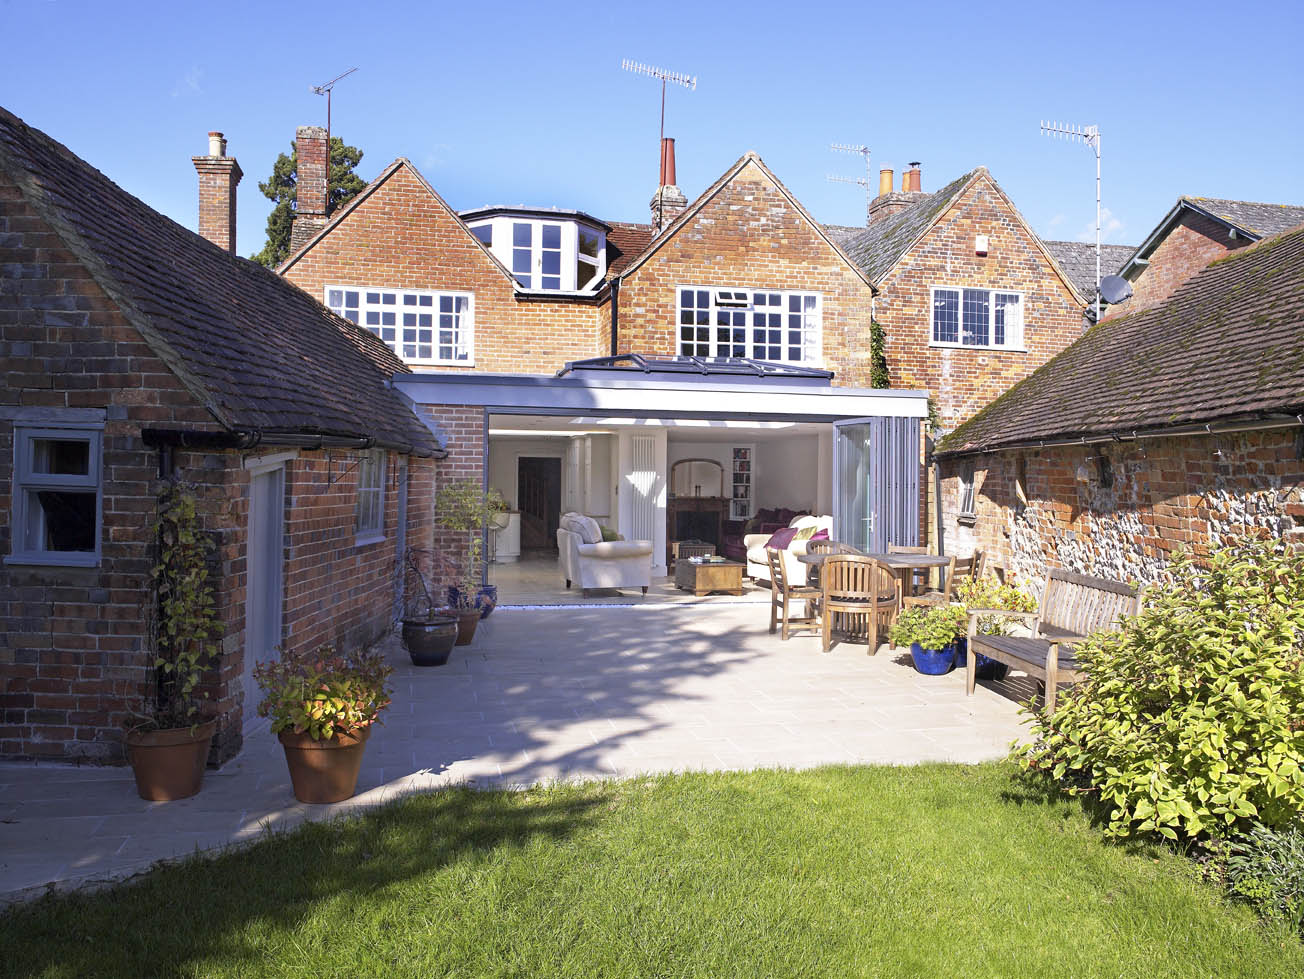 Orangeries enhance listed and period properties.